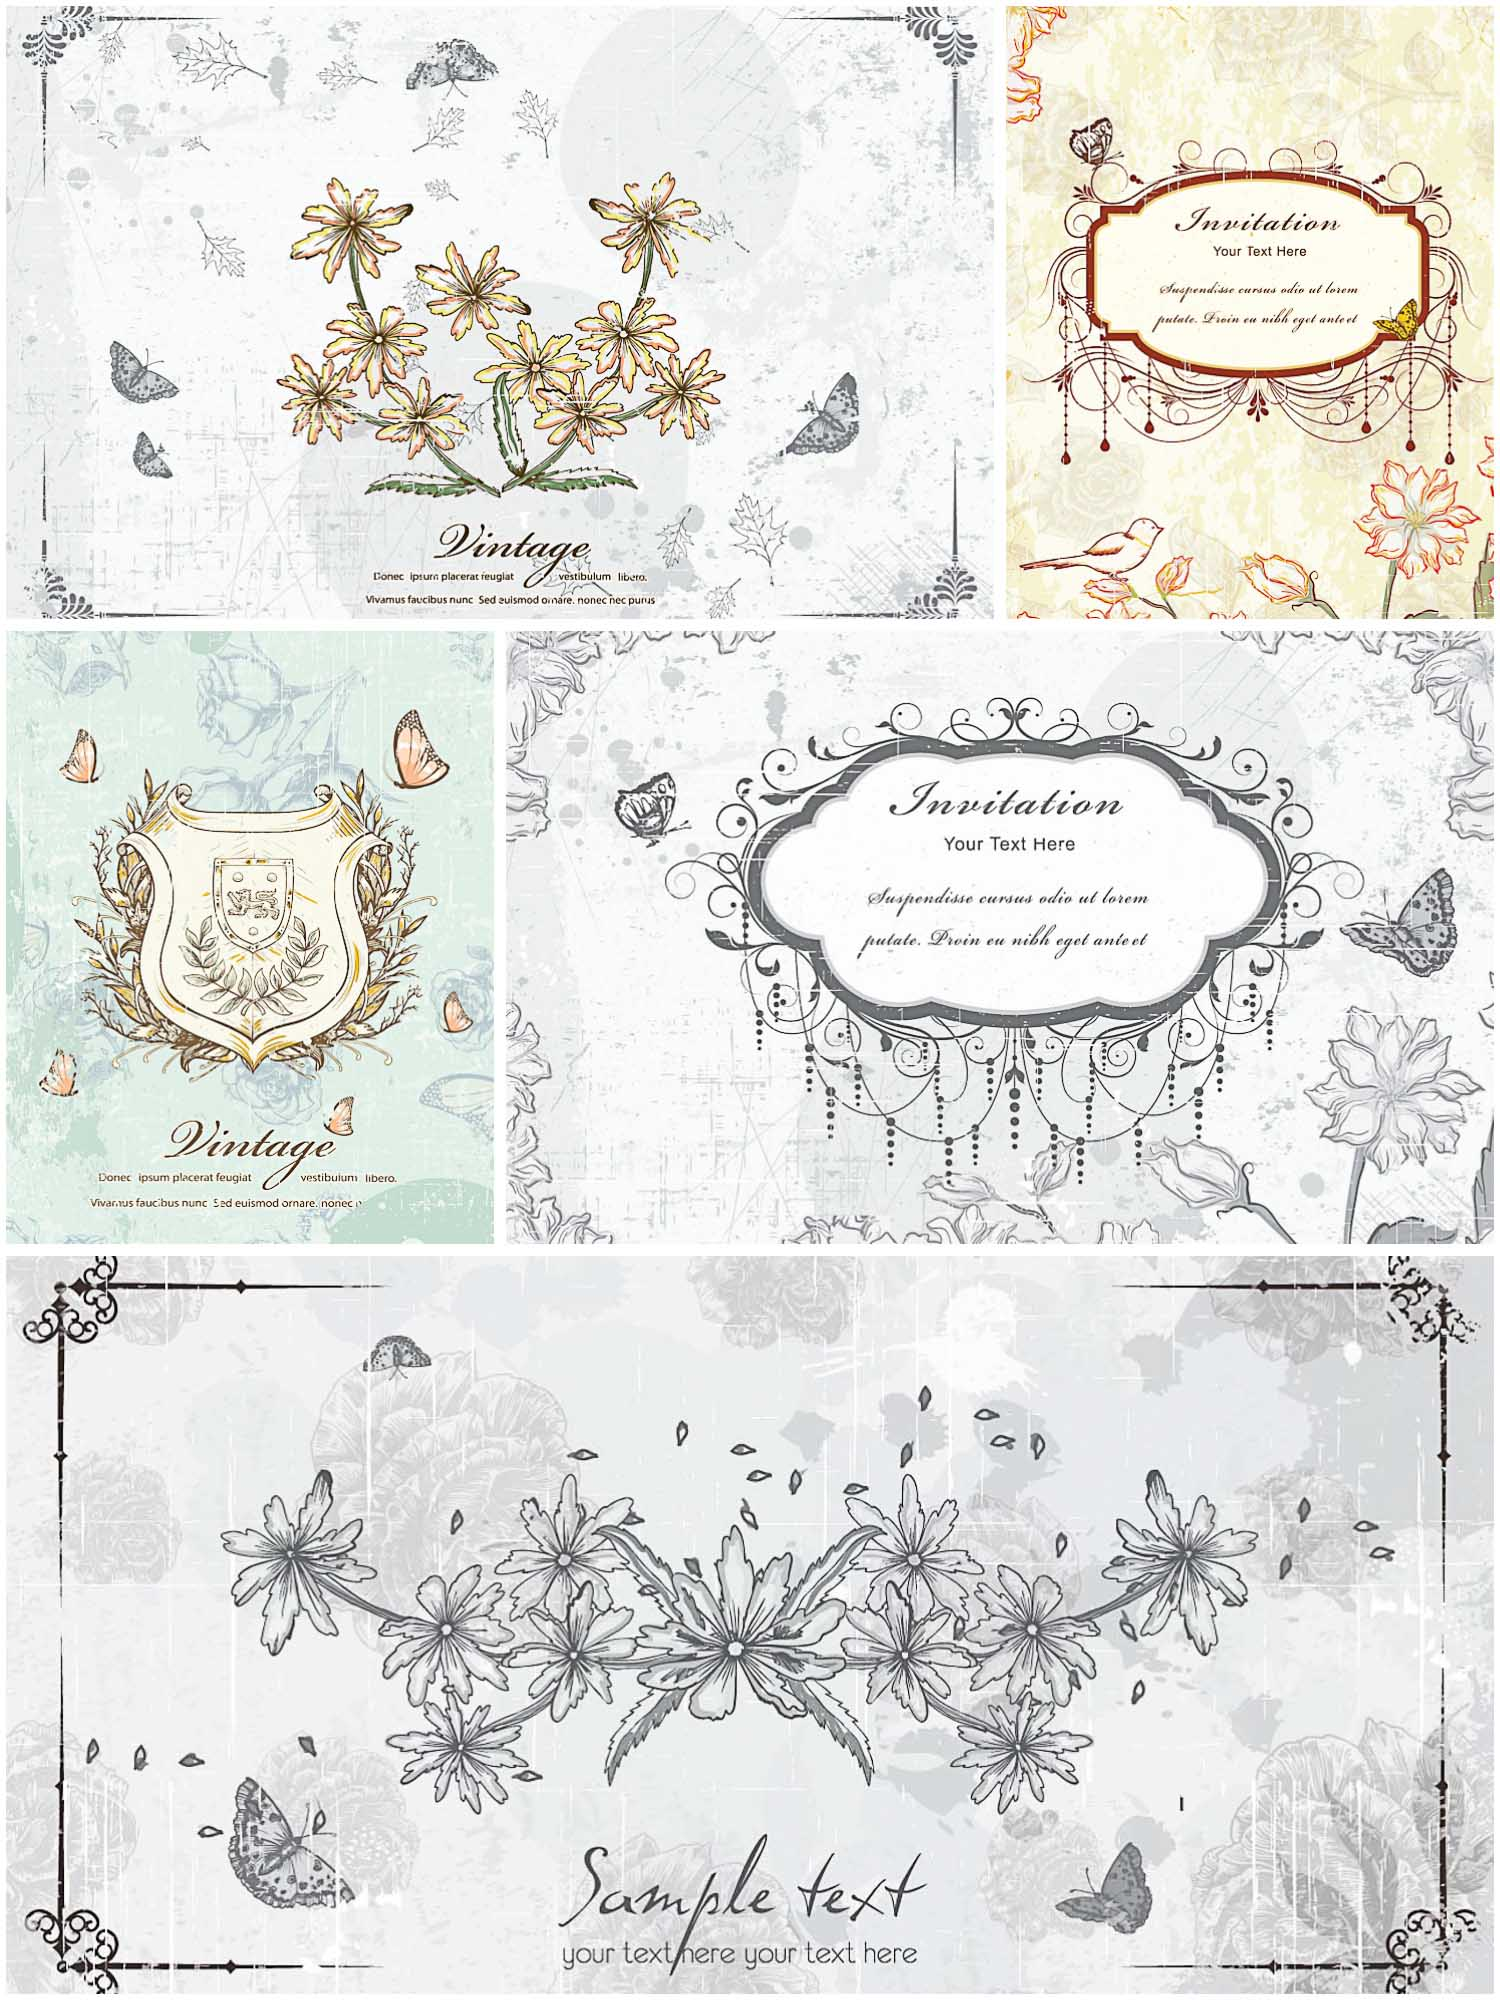 Old Floral Invitation Vector Cards Free Download